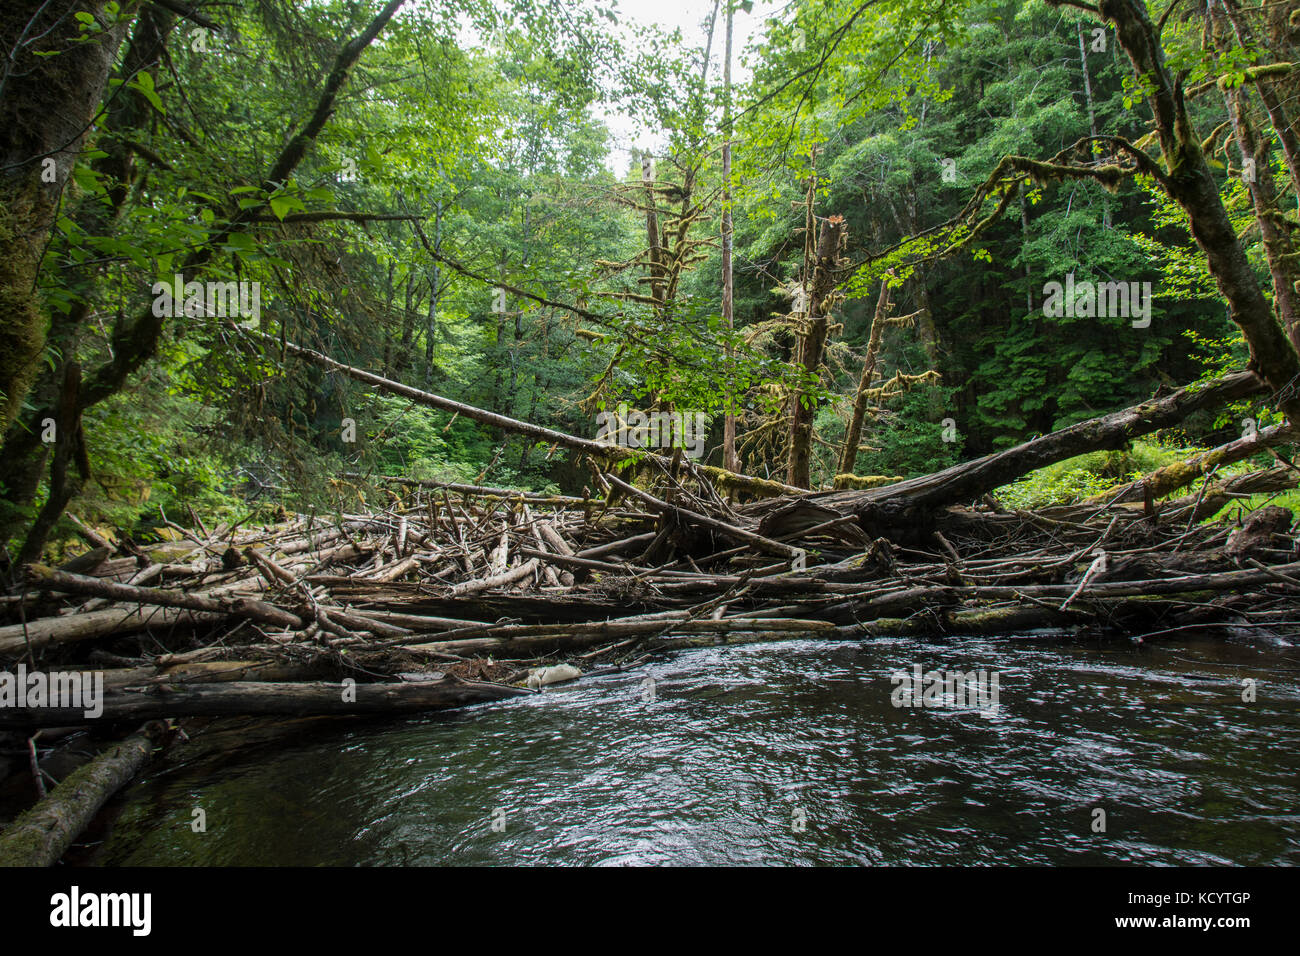 Log jam on Copper River, Moresby Island, Haida Gwaii, formerly known as Queen Charlotte Islands, British Columbia, - Stock Image